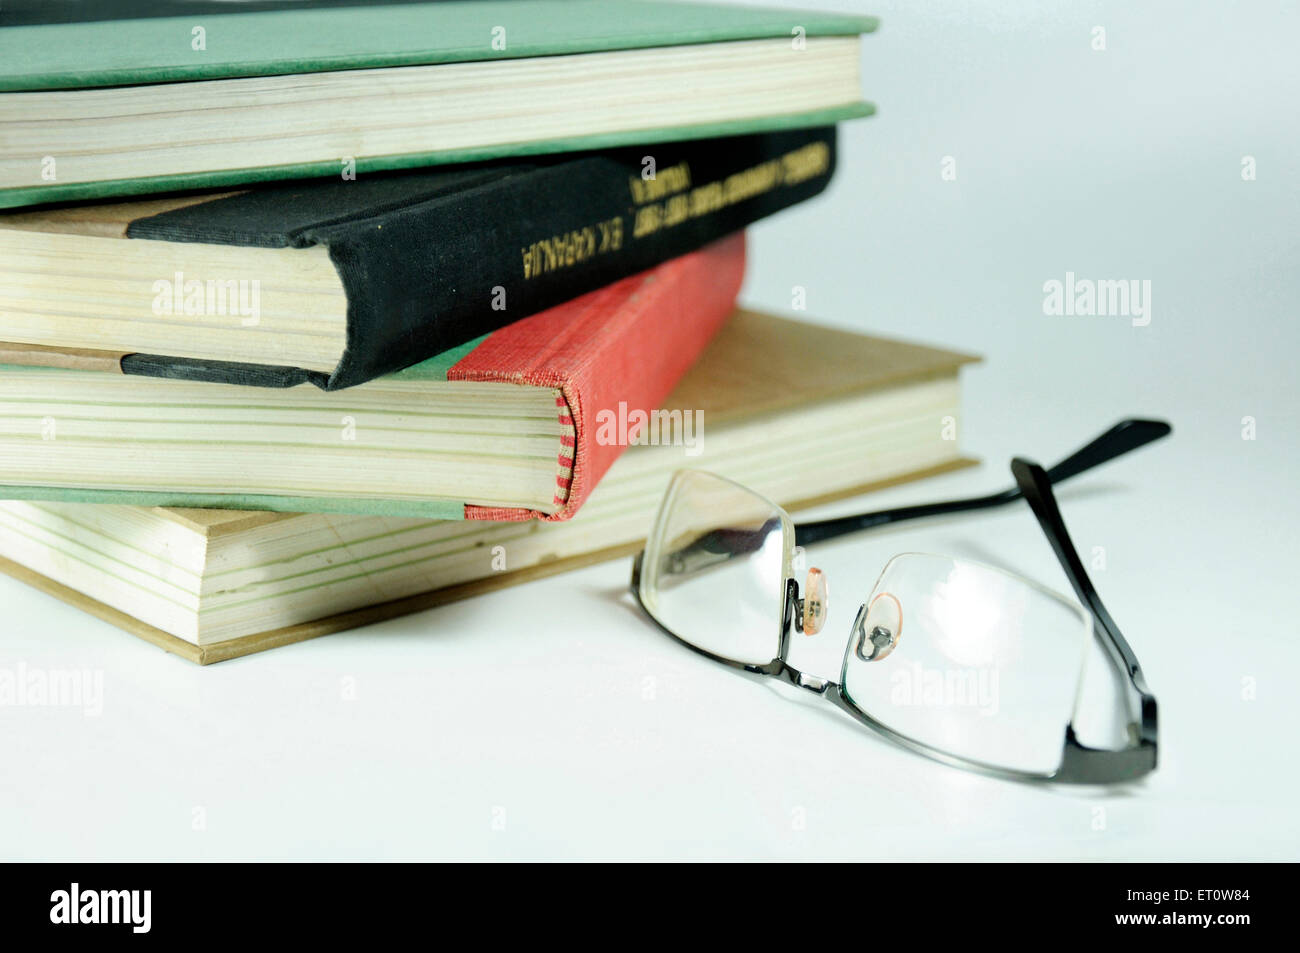 books and spectacles concept of reading India Asia - Stock Image